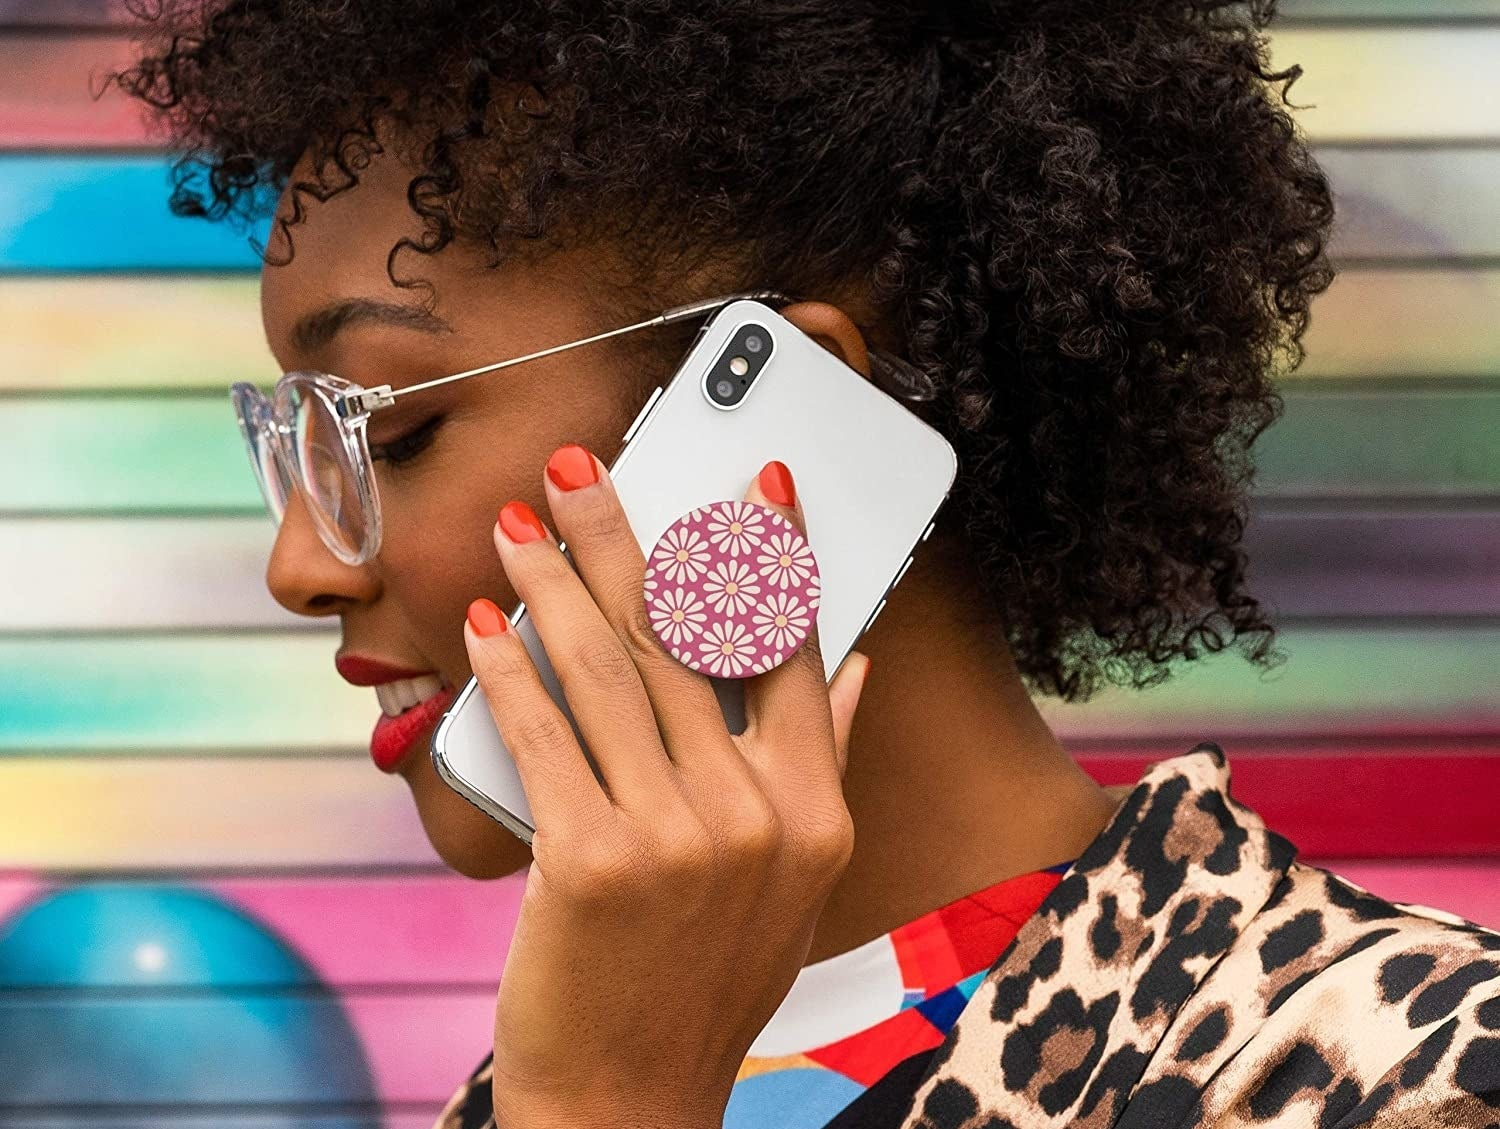 a model holding a phone with the pop socket